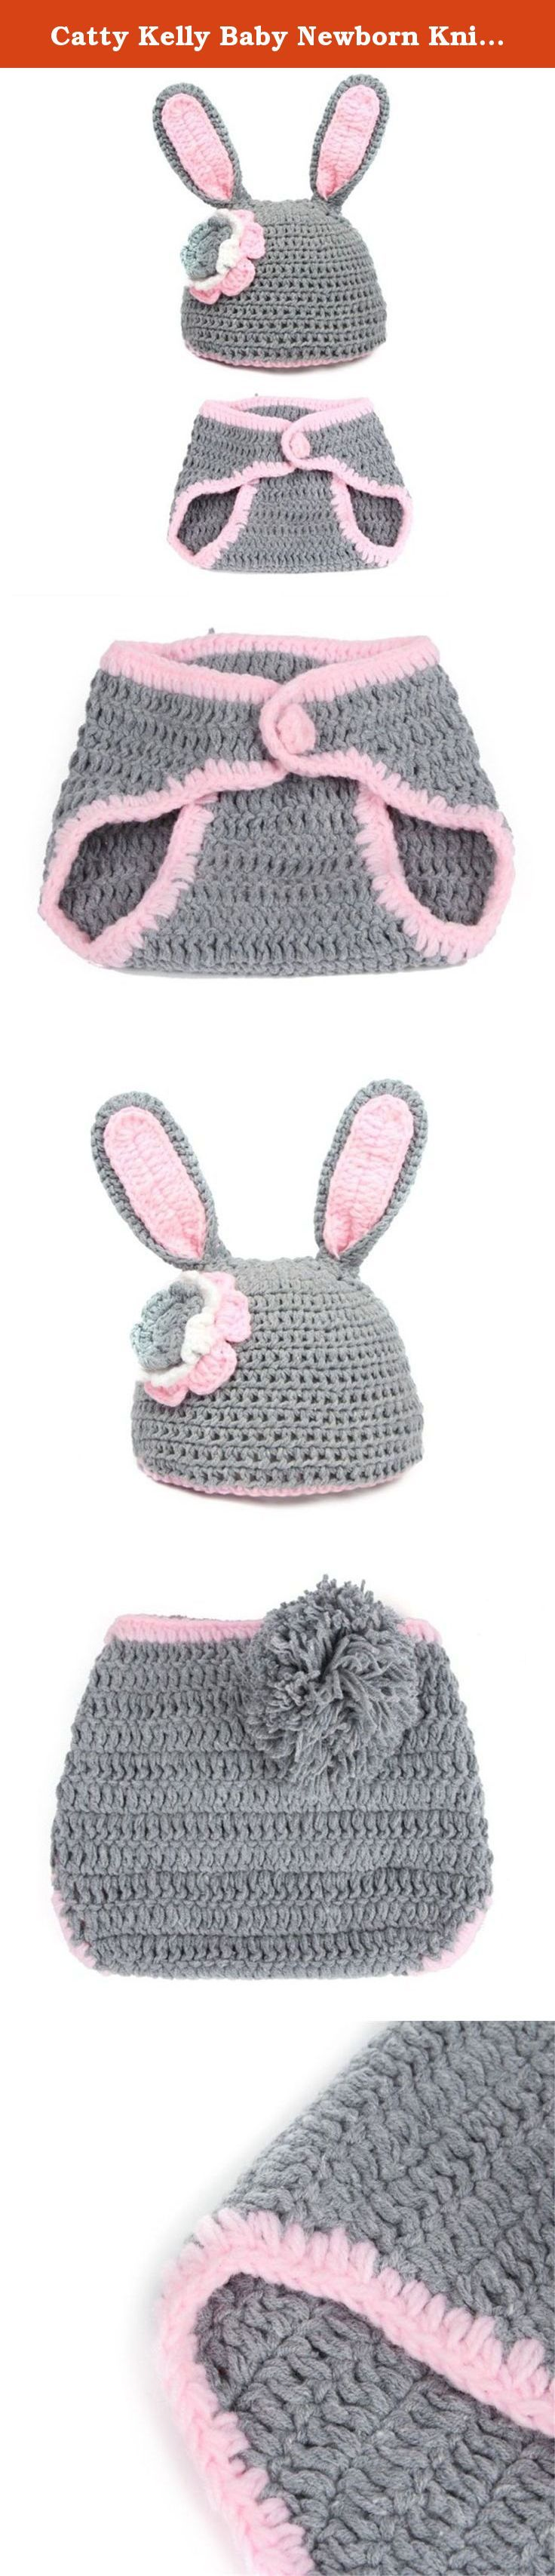 Catty Kelly Baby Newborn Knit Crochet Minnie Cute Rabbit Photo Outfits. Dear friend, Please do not doubt our low prices. We just a new store in Amazon,so that we want to take some promotional activities for our customers to improve our reputation. Please be assured that we will provide the inexpensive products to you. If you have any questions about our products. Or if you have any dissatisfaction after receive your item. Please feel free to contact us. We will help you solve your problem…